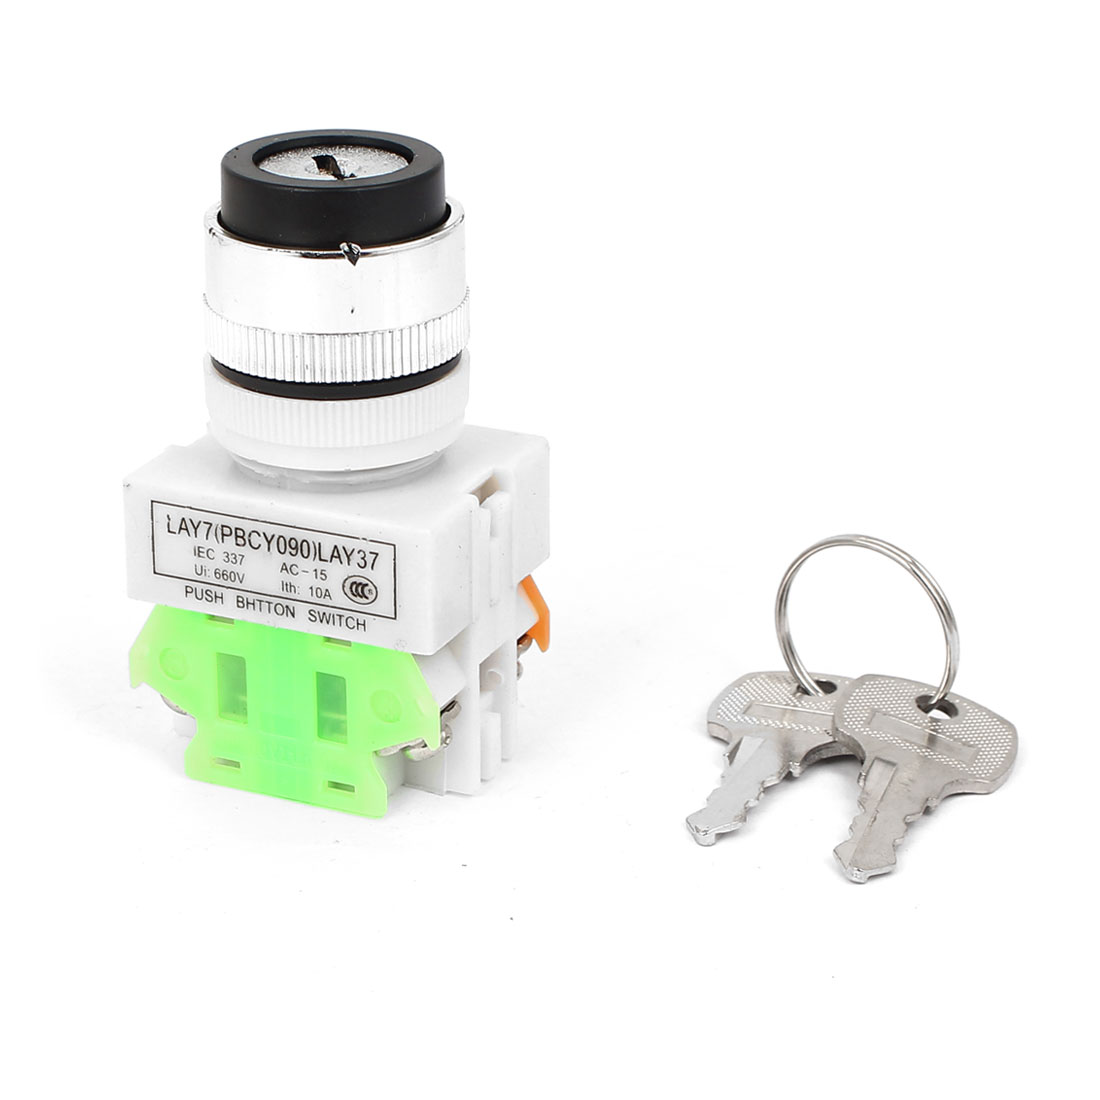 AC 660V 10A 1NO 1NC DPST Key Rotary Start Locking Push Button Switch